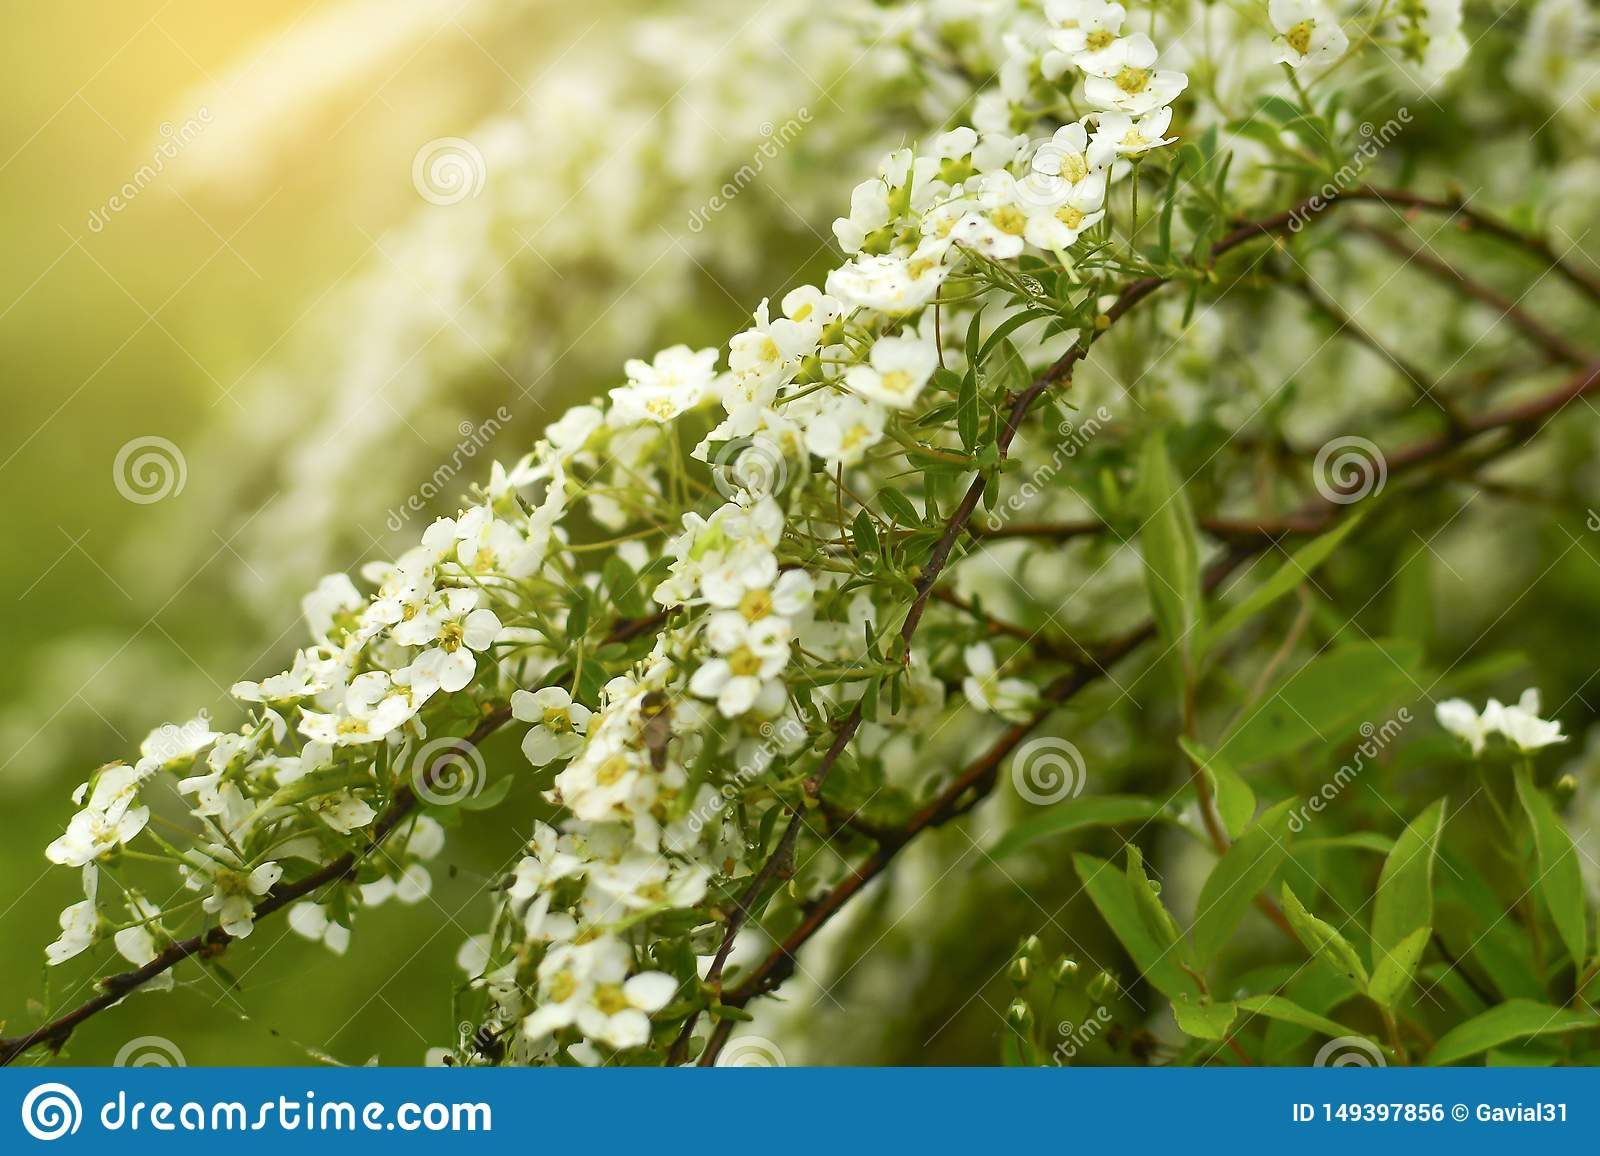 Soft focus. Spirea is an ornamental shrub from the Rosaceae family